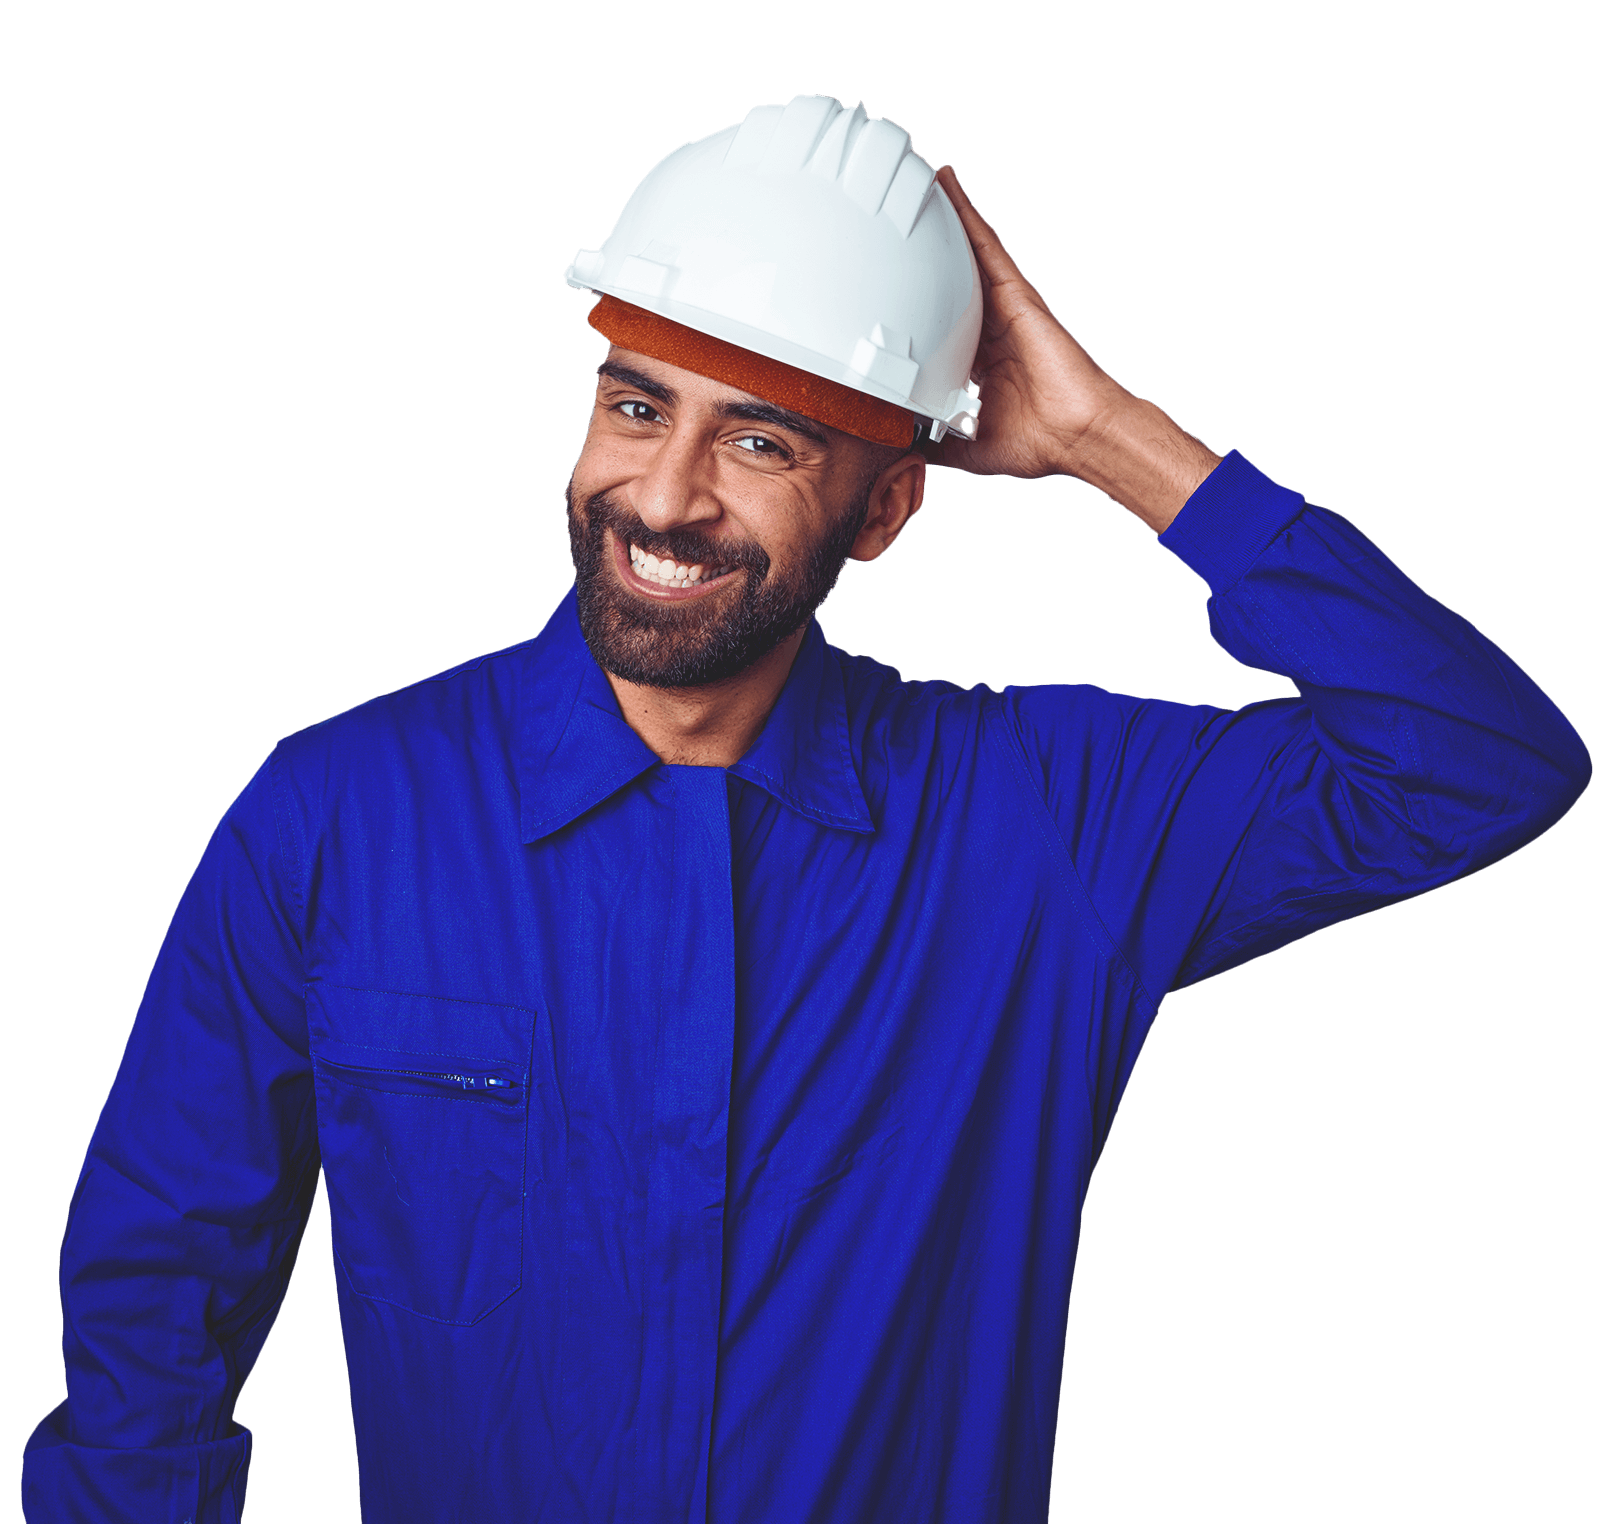 Man with close-cropped beard wearing a bright blue shirt and white construction hat, smiling. His left hand rests against the back of his head.